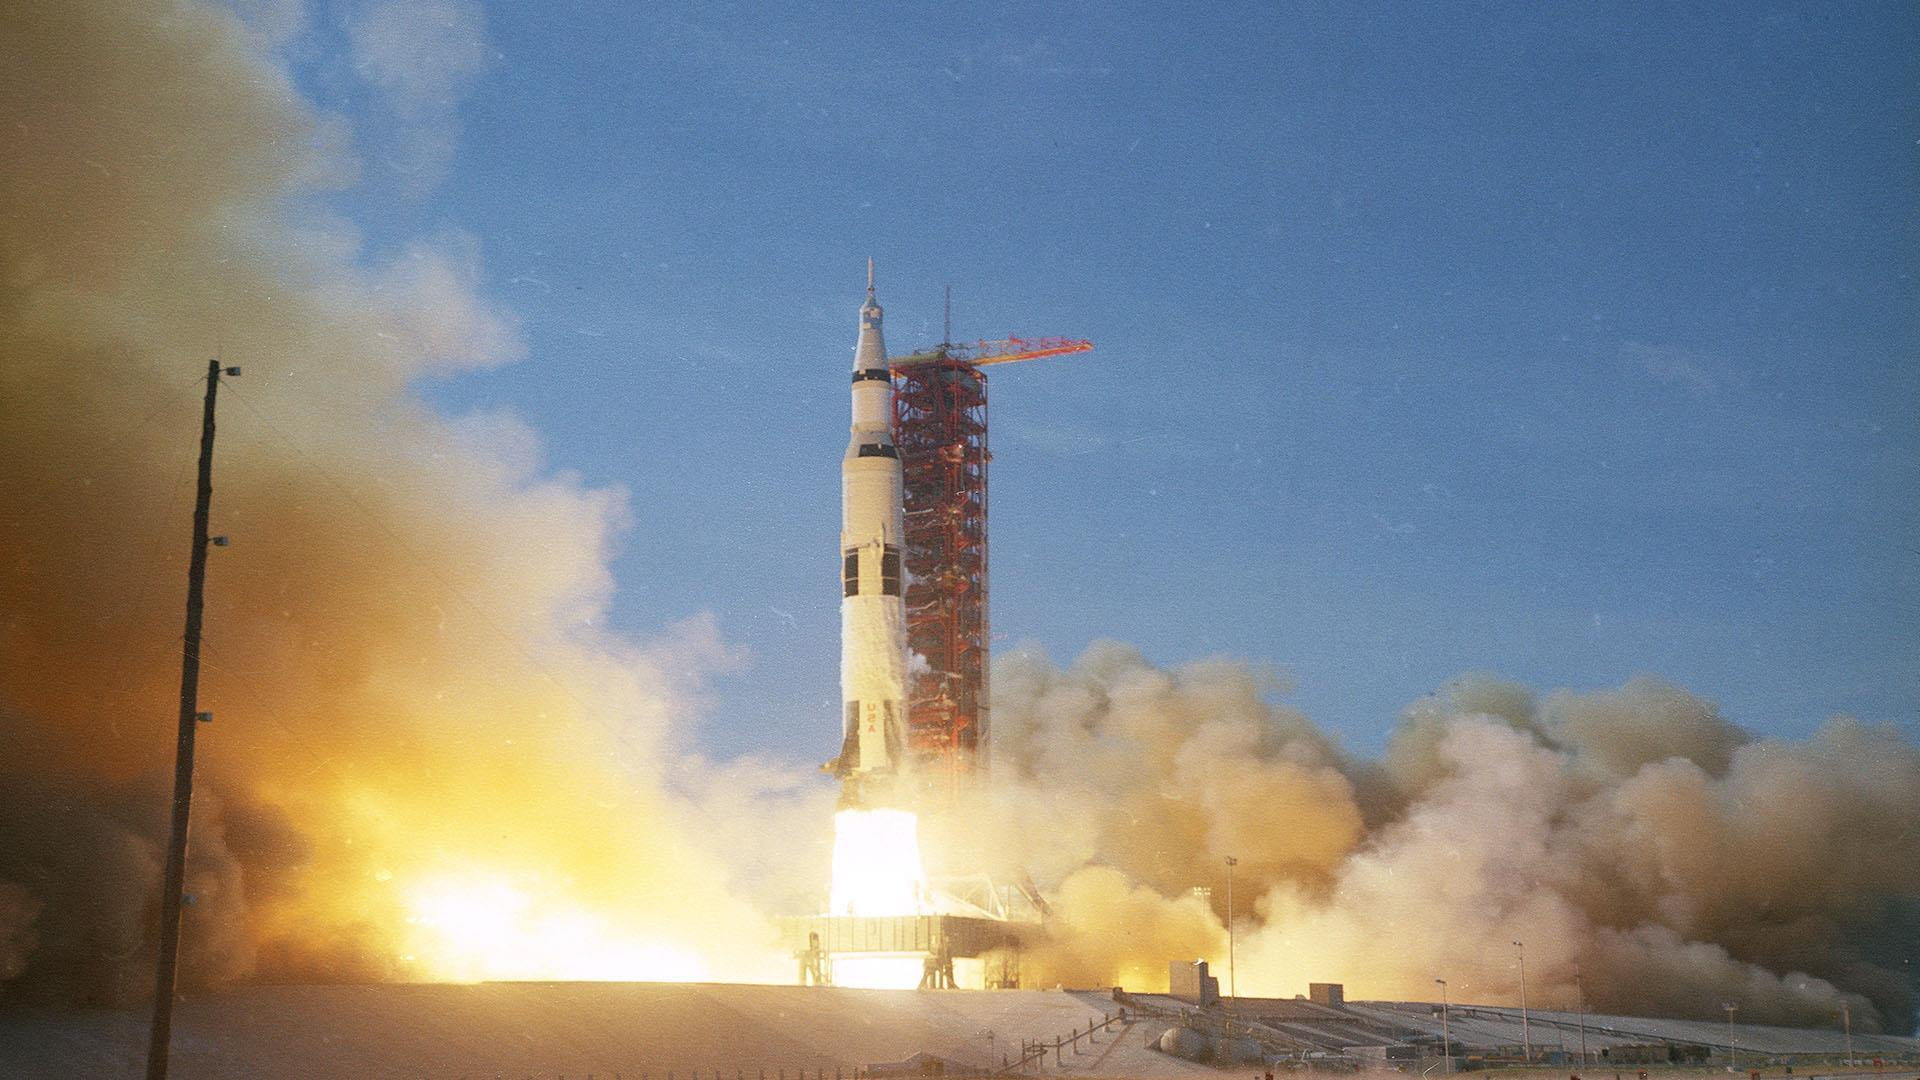 Apollo 13 launch